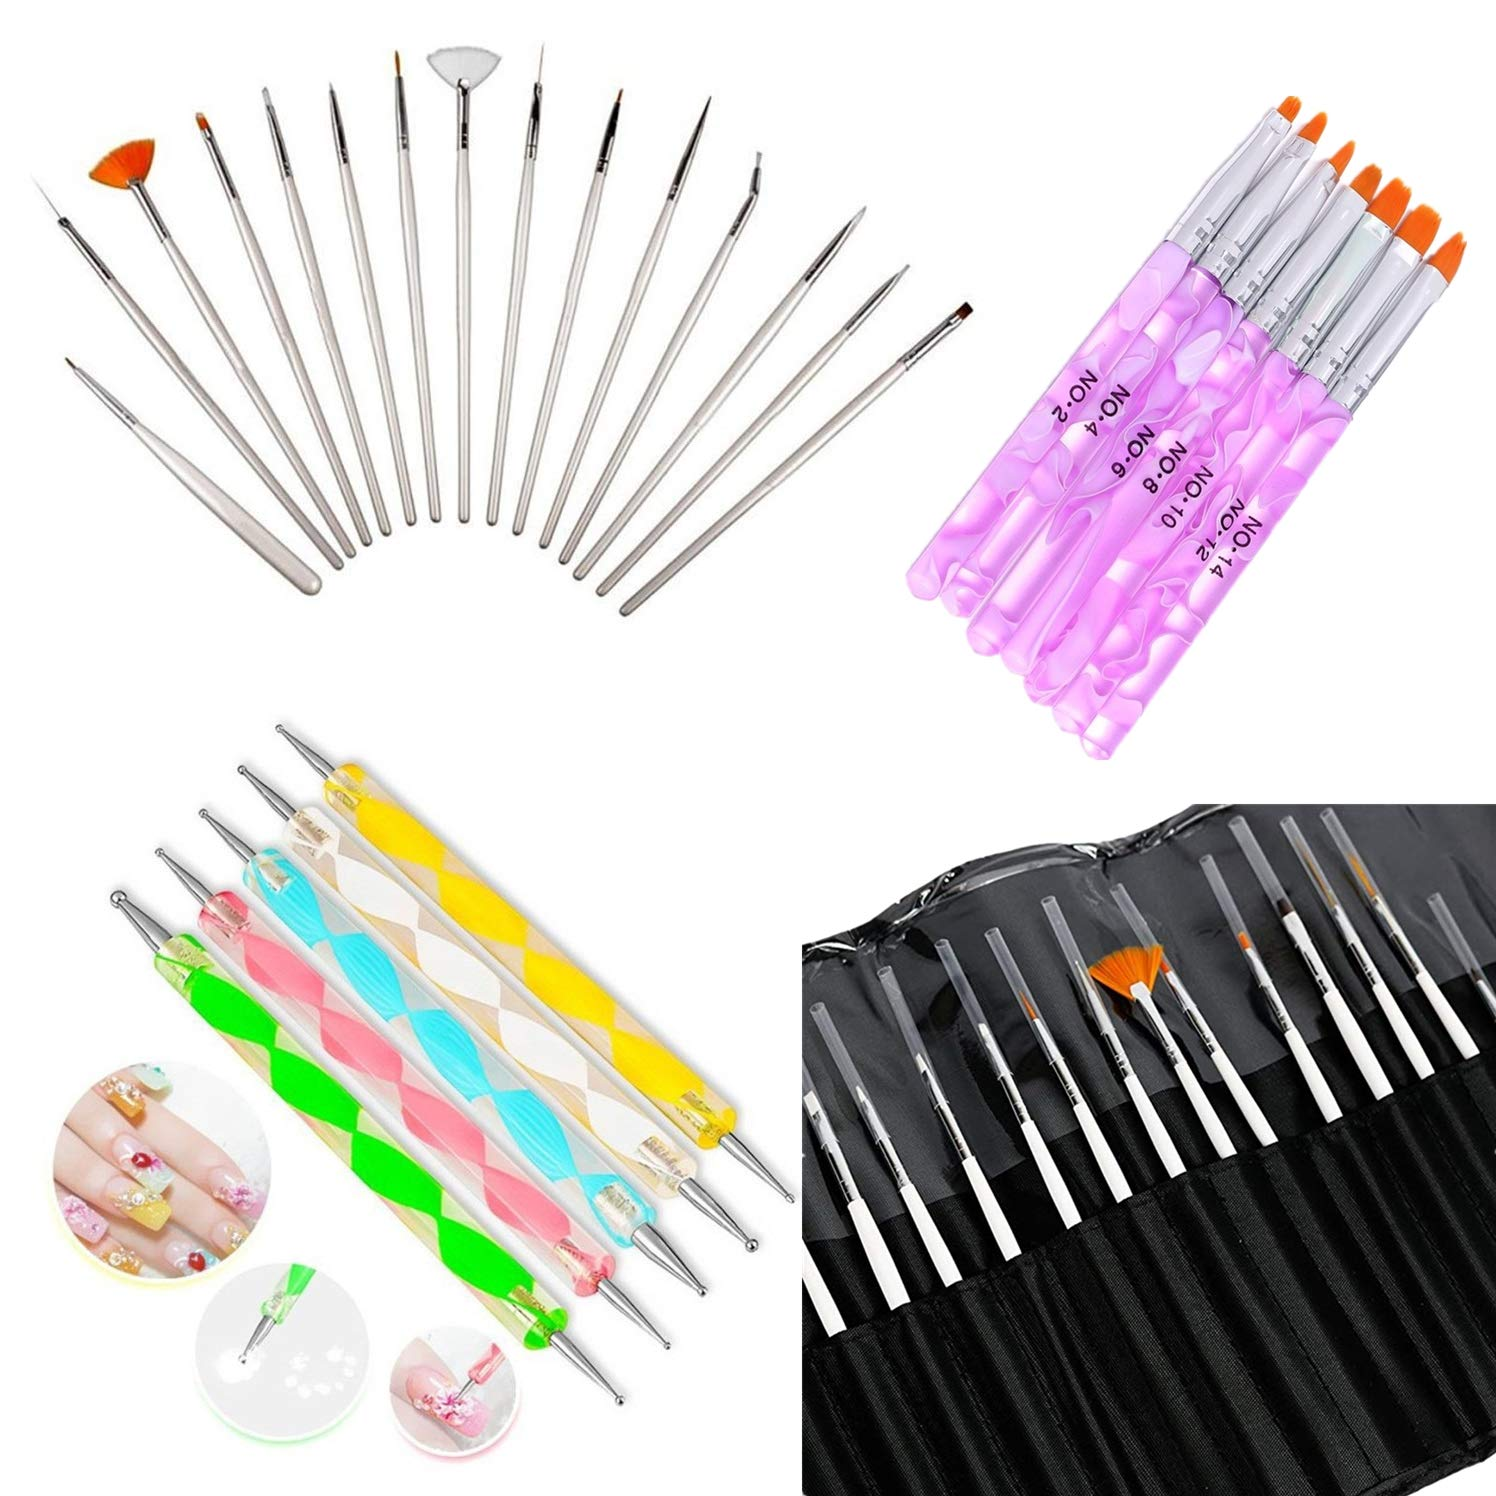 Glam Hobby 27pc Gel Acrylic Nail Art Painting Kit Brushes and Dotting Pen Brushes & Dotting Pen/Dotter Tool Kit Set(20PCS Nail Art Design Dotting Painting Drawing Brush + 7Pcs Uv Gel Nail Brush) : Beauty